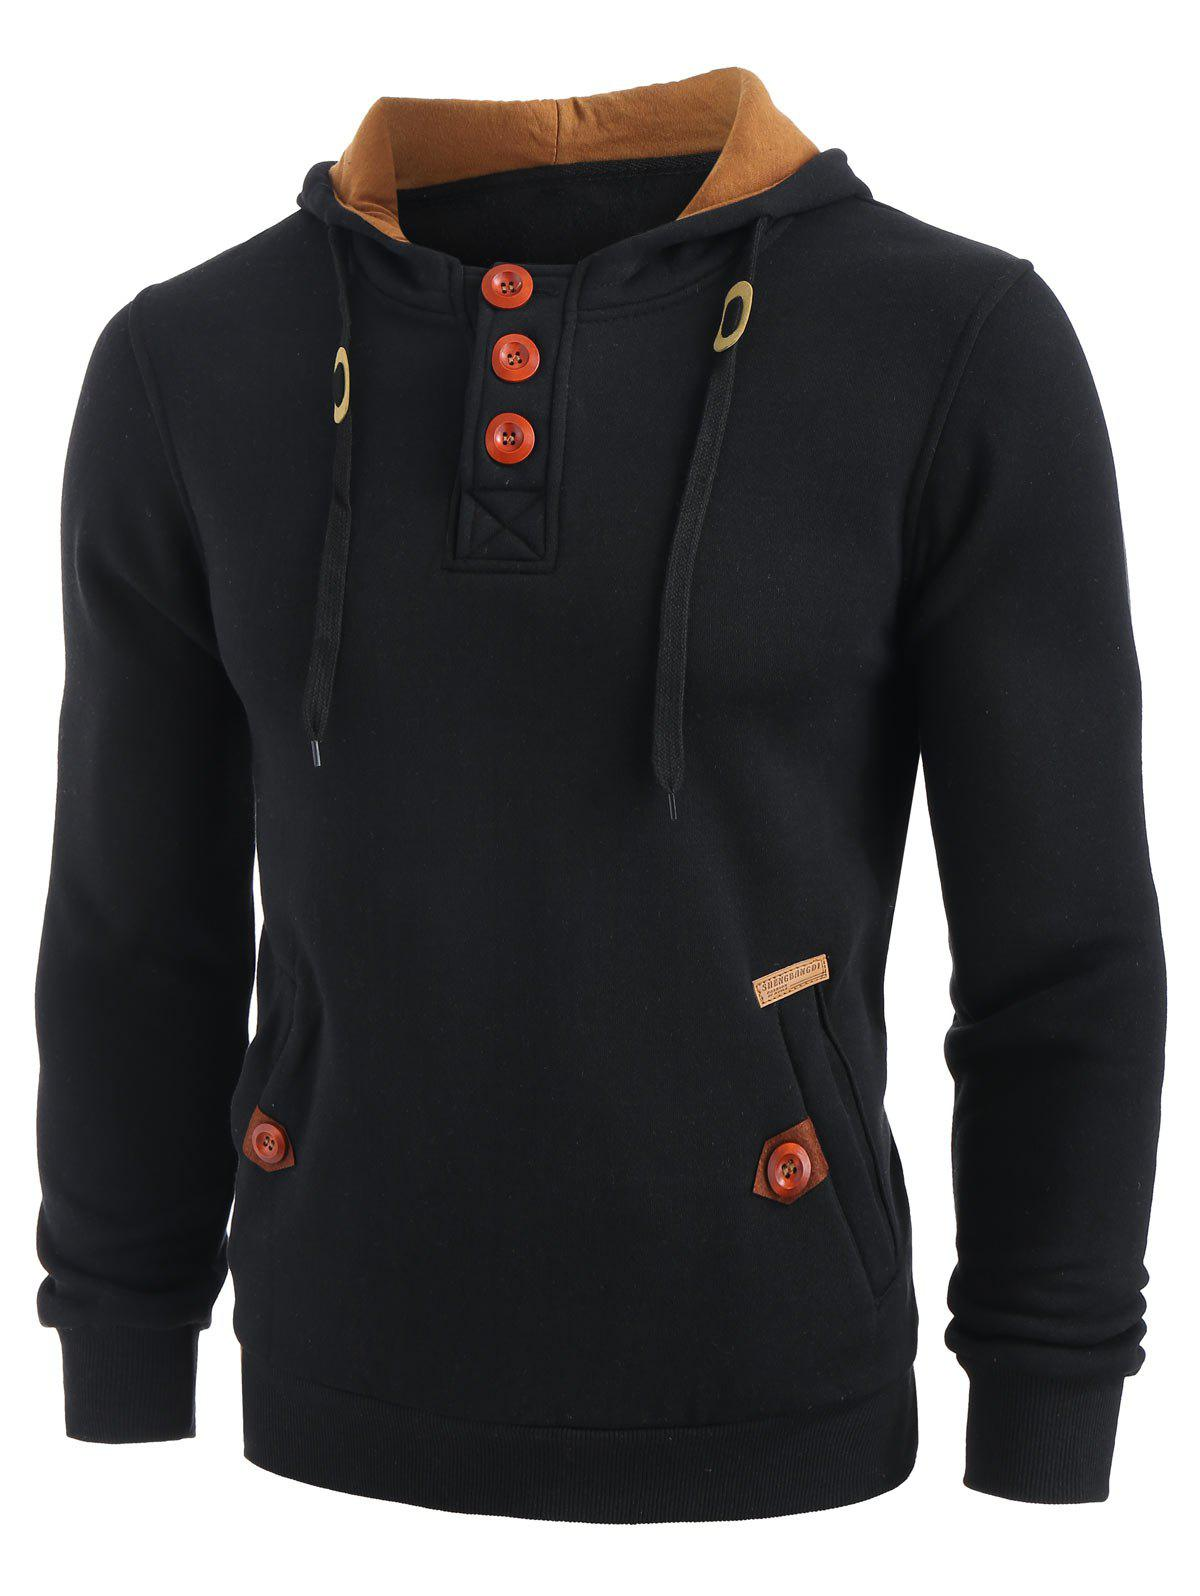 Sweat à Capuche en Blocs de Couleurs à Demi-Zip à Cordon Noir L